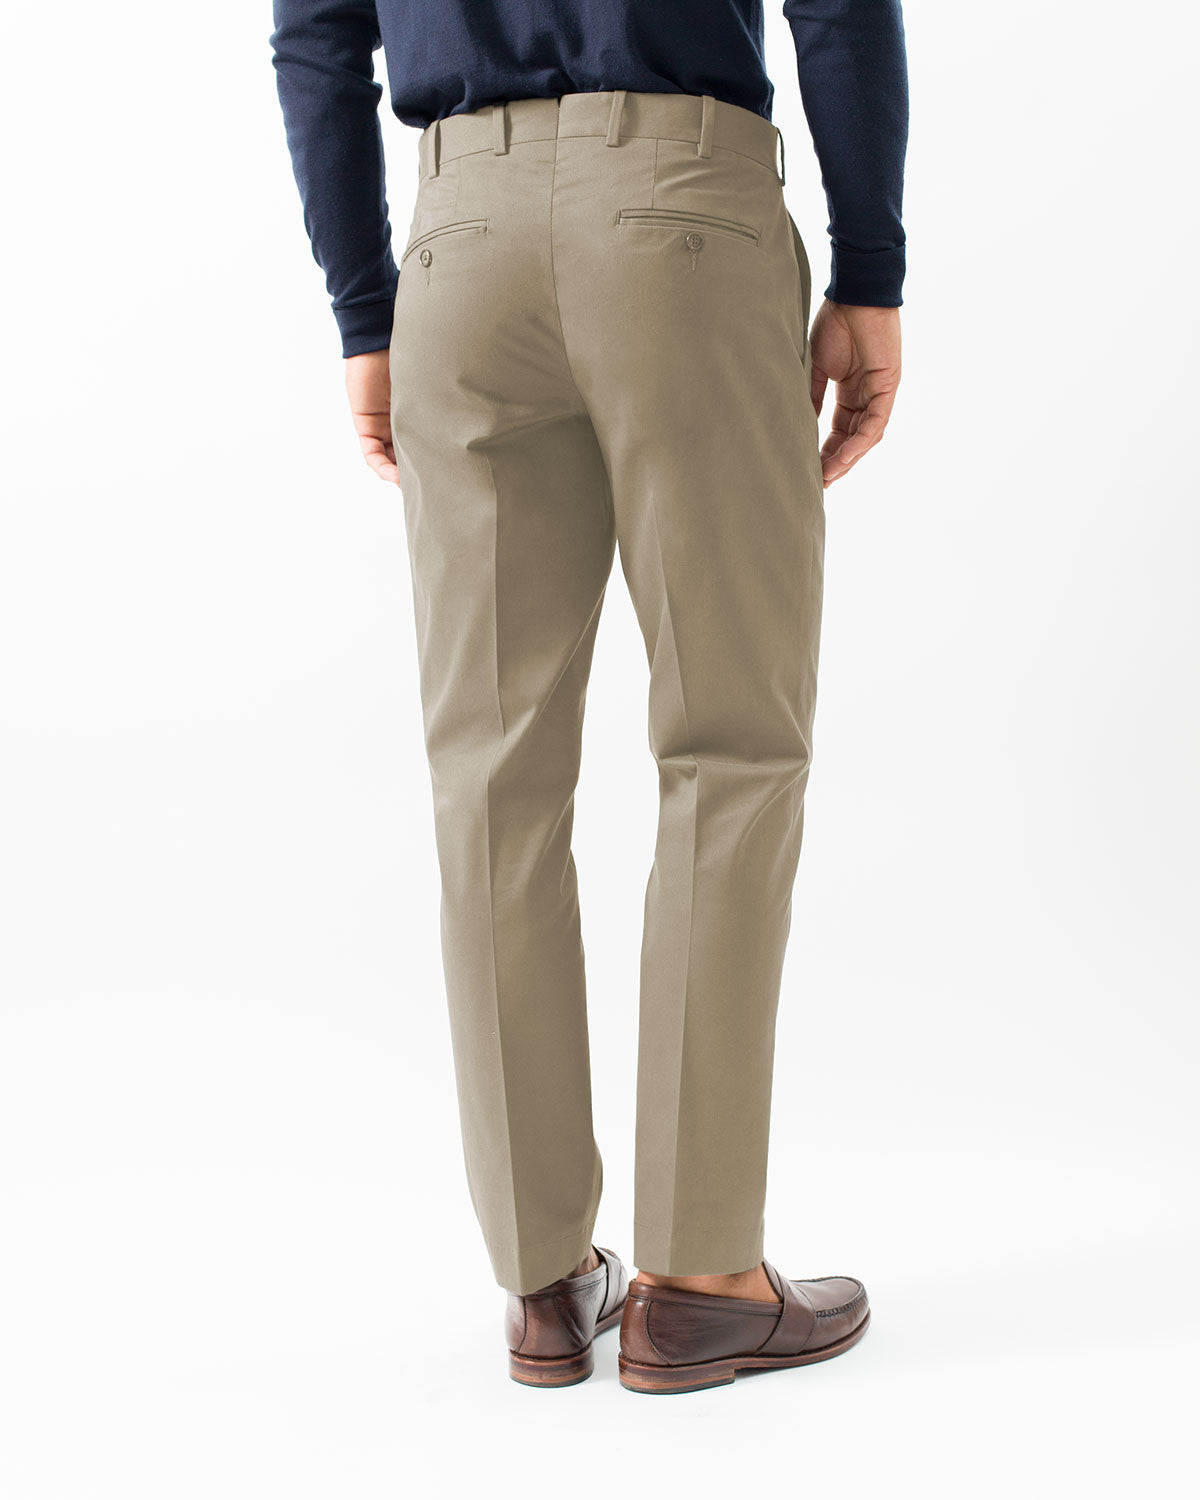 Cotton Stretch Chino, Khaki